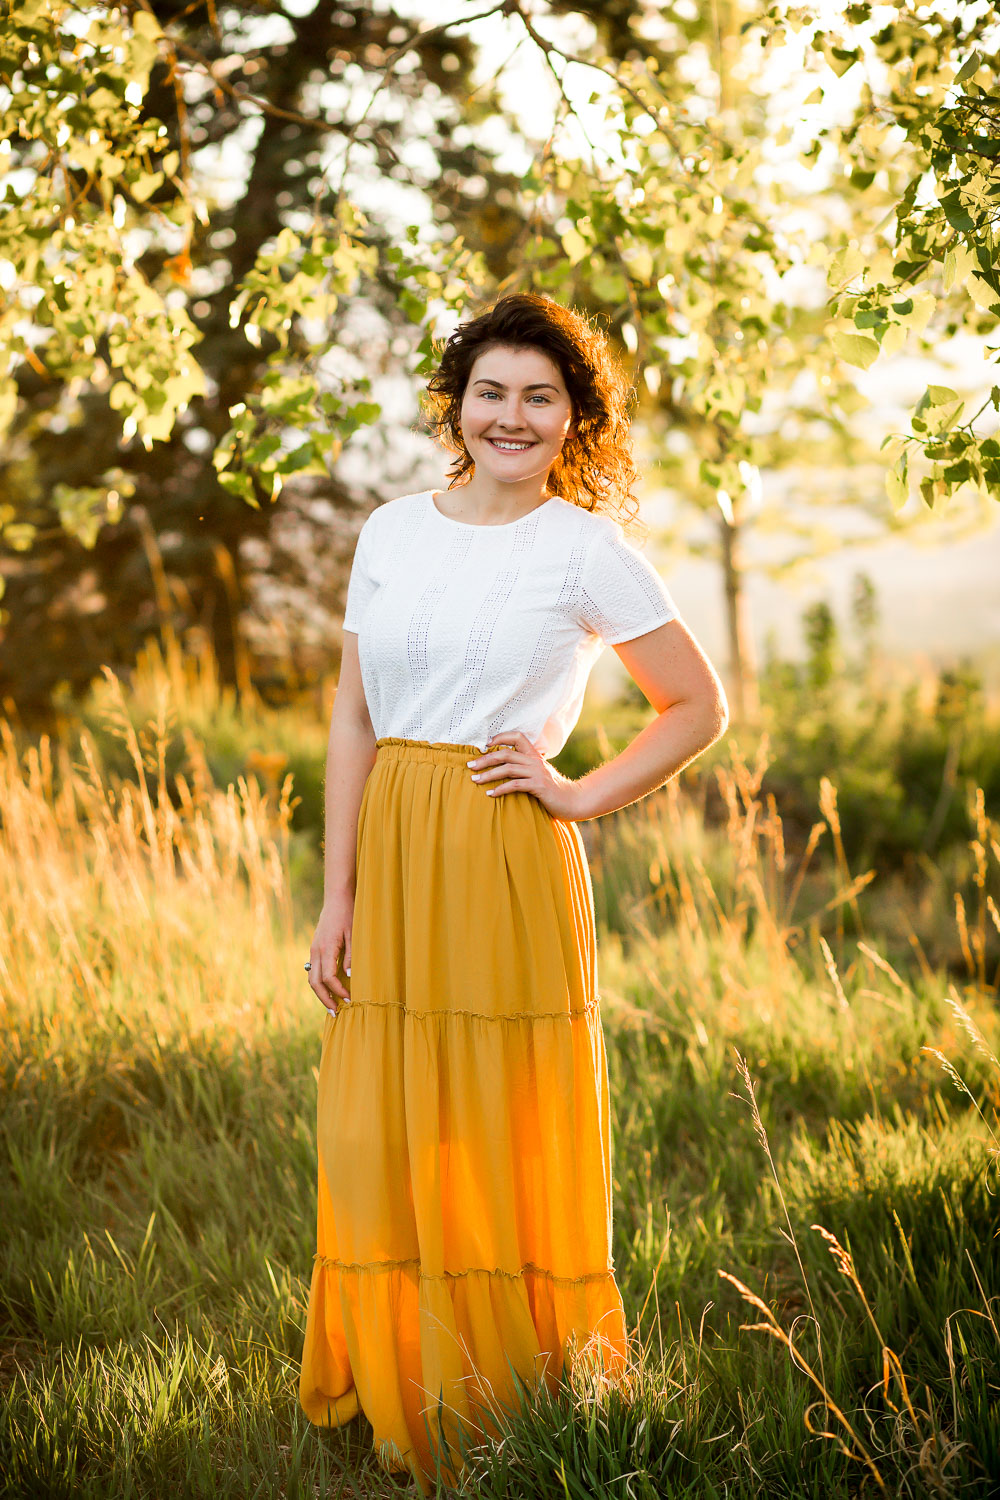 denver_senior_portrait_photographer_kathleen_bracken_photography-4.jpg